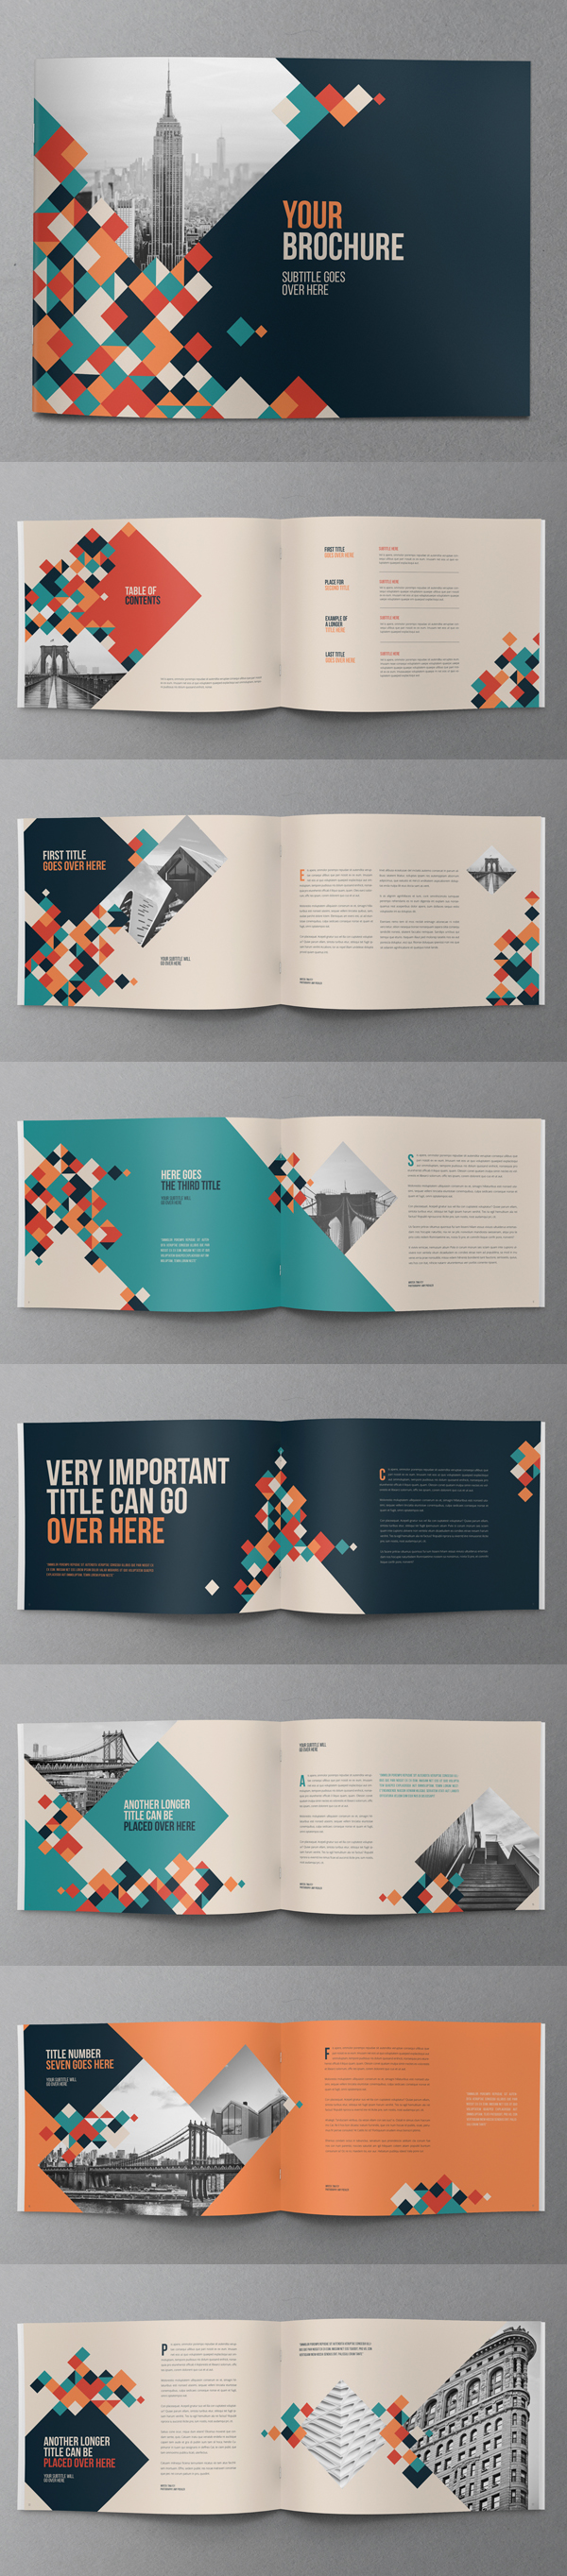 Creative Colorful Squares Brochure Design